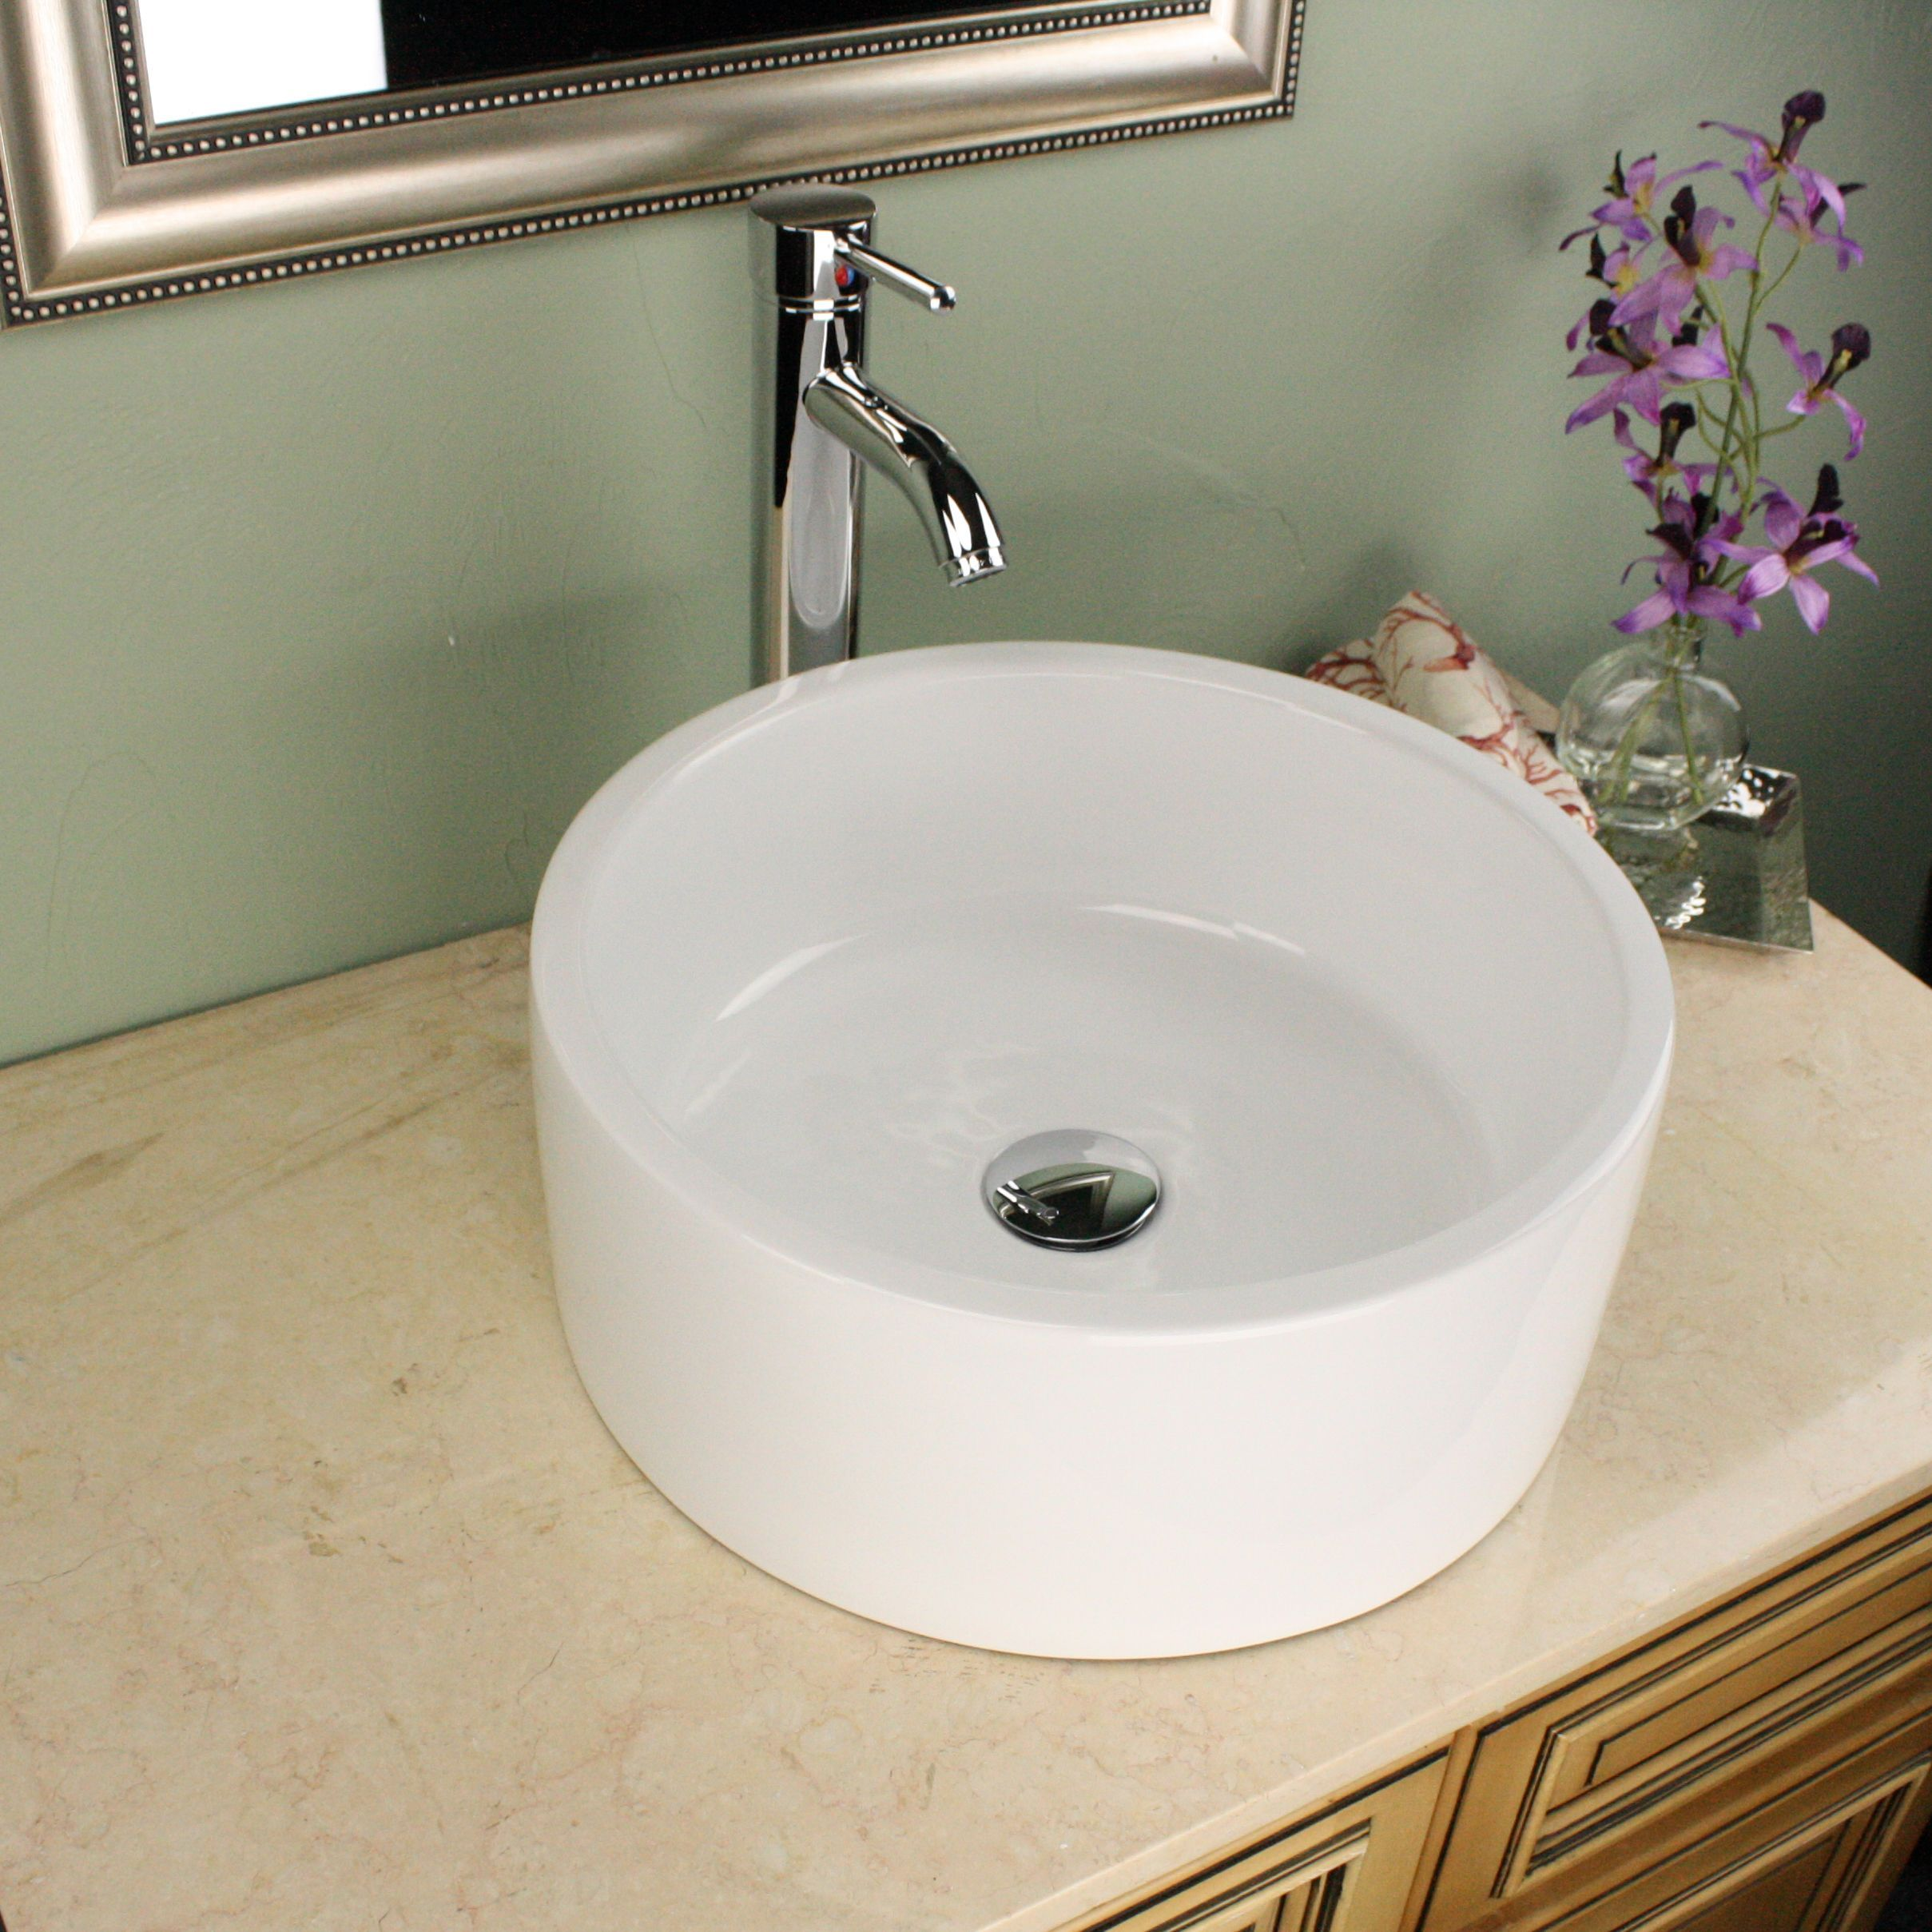 Highpoint Collection 16 Inch Round White Vessel Sink With Faucet And Drain Combo 16 Inch Round White Vessel With Faucet And Drain Vessel Sink Bathroom Sink White Vessel Sink